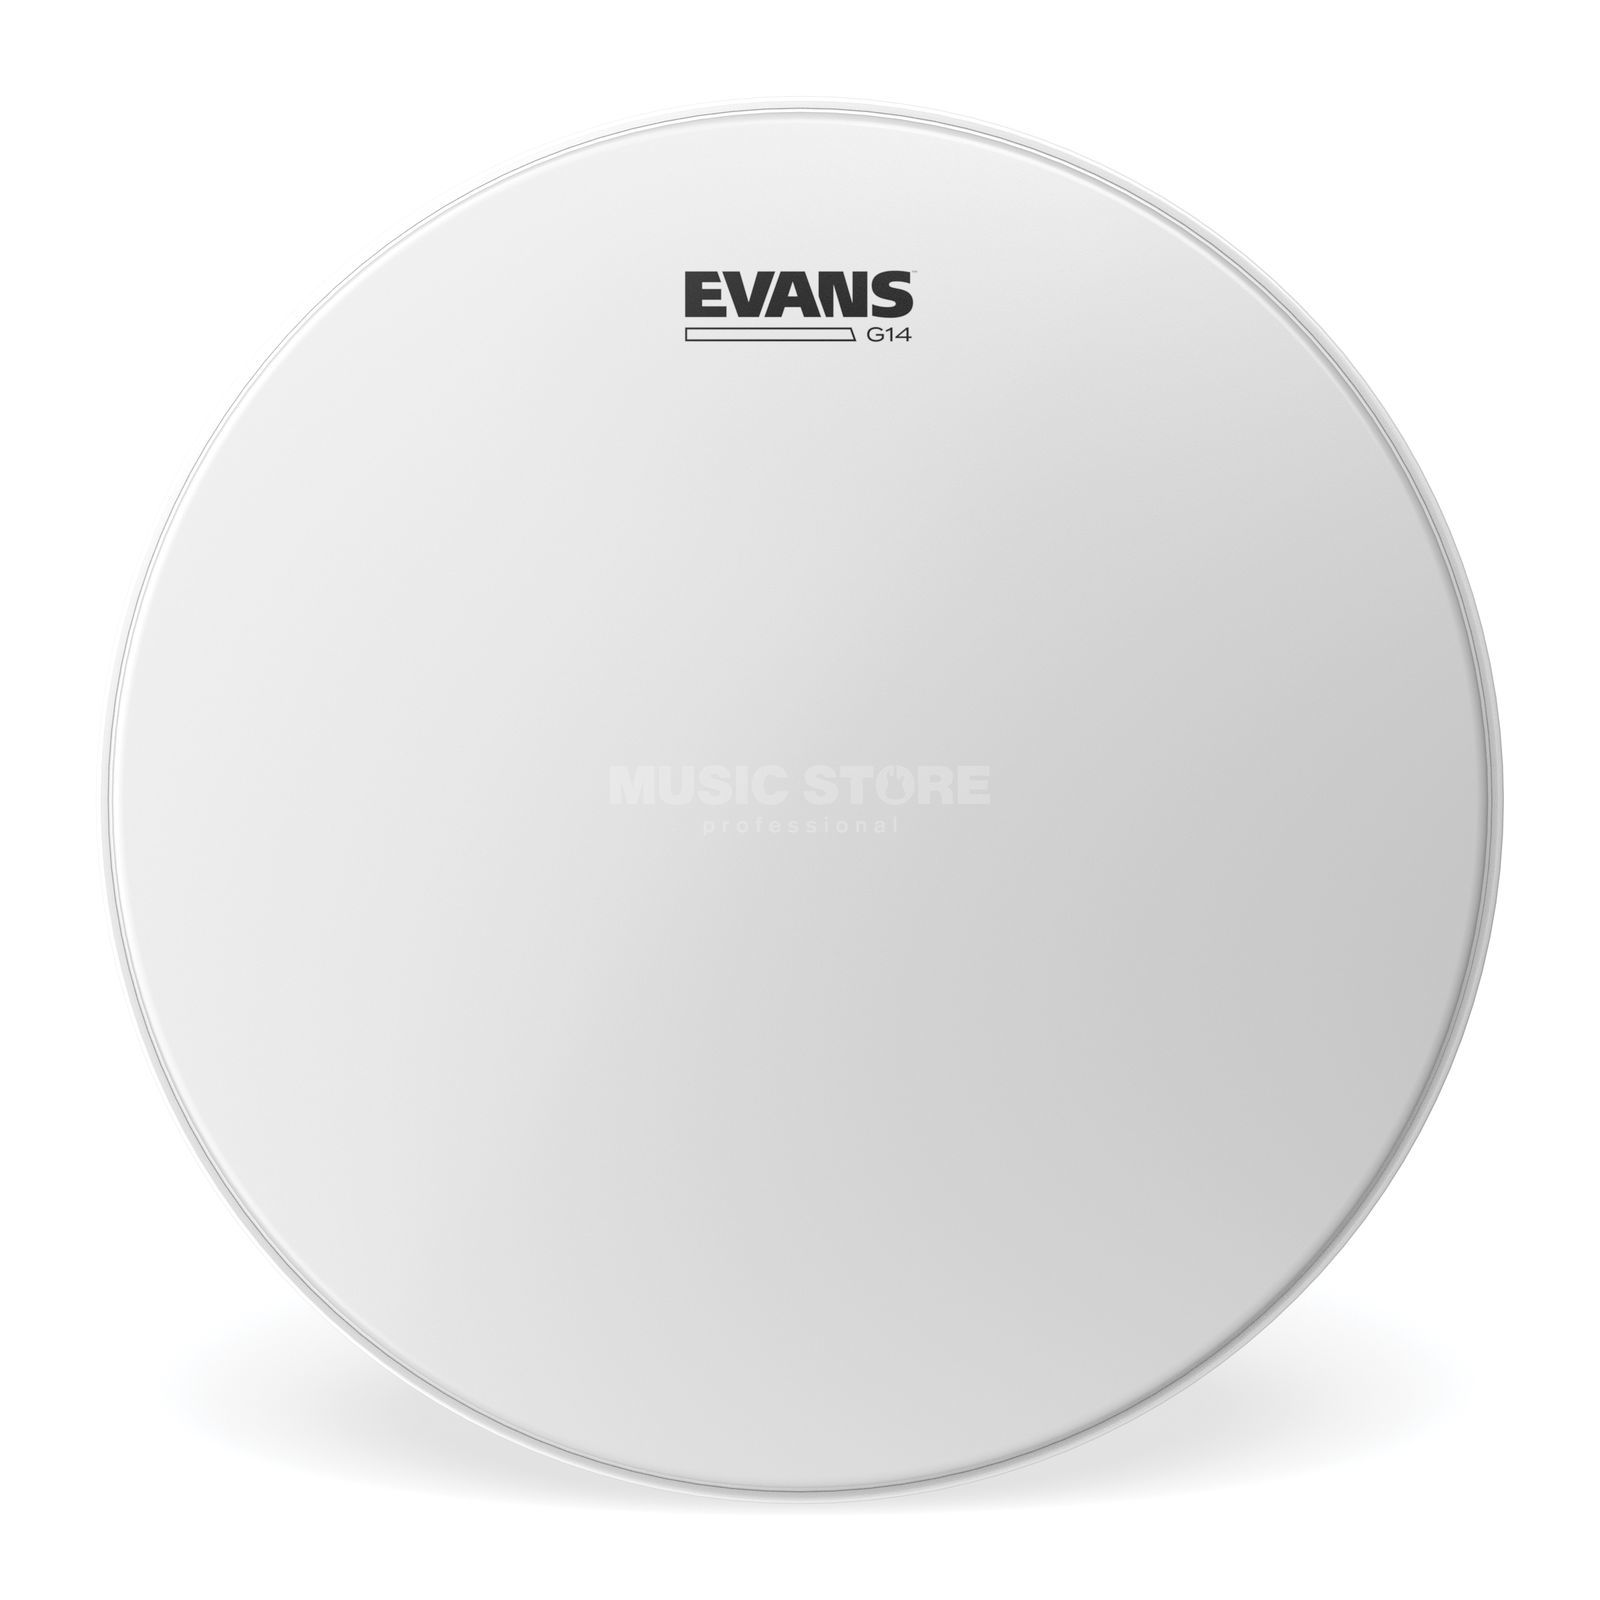 "Evans G14 Coated 13"", B13G14, Tom/Snare Batter Produktbild"